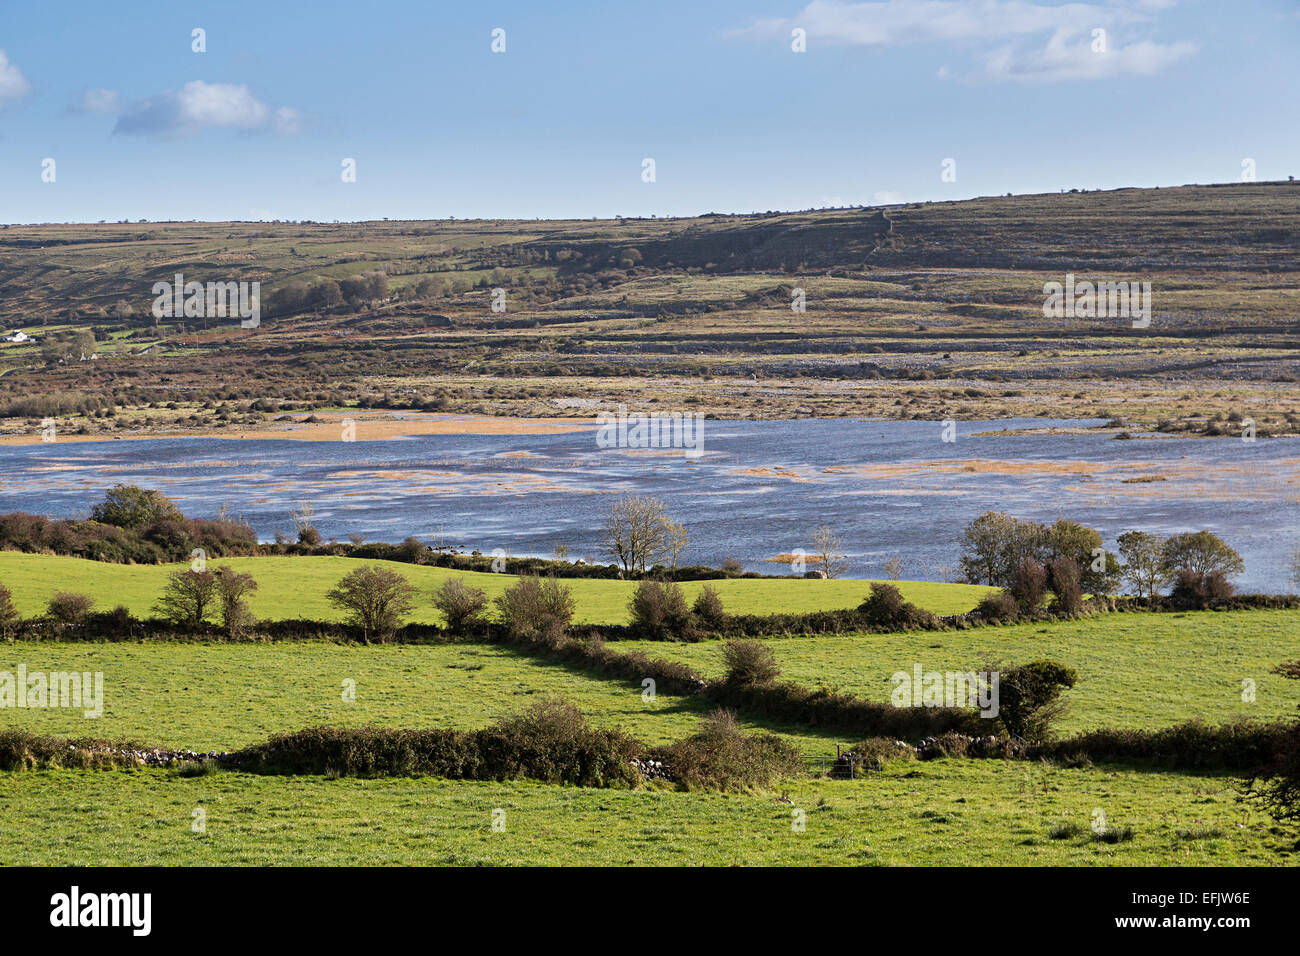 Carran Turlough seasonal lake, Burren, Co. Clare, Ireland - Stock Image